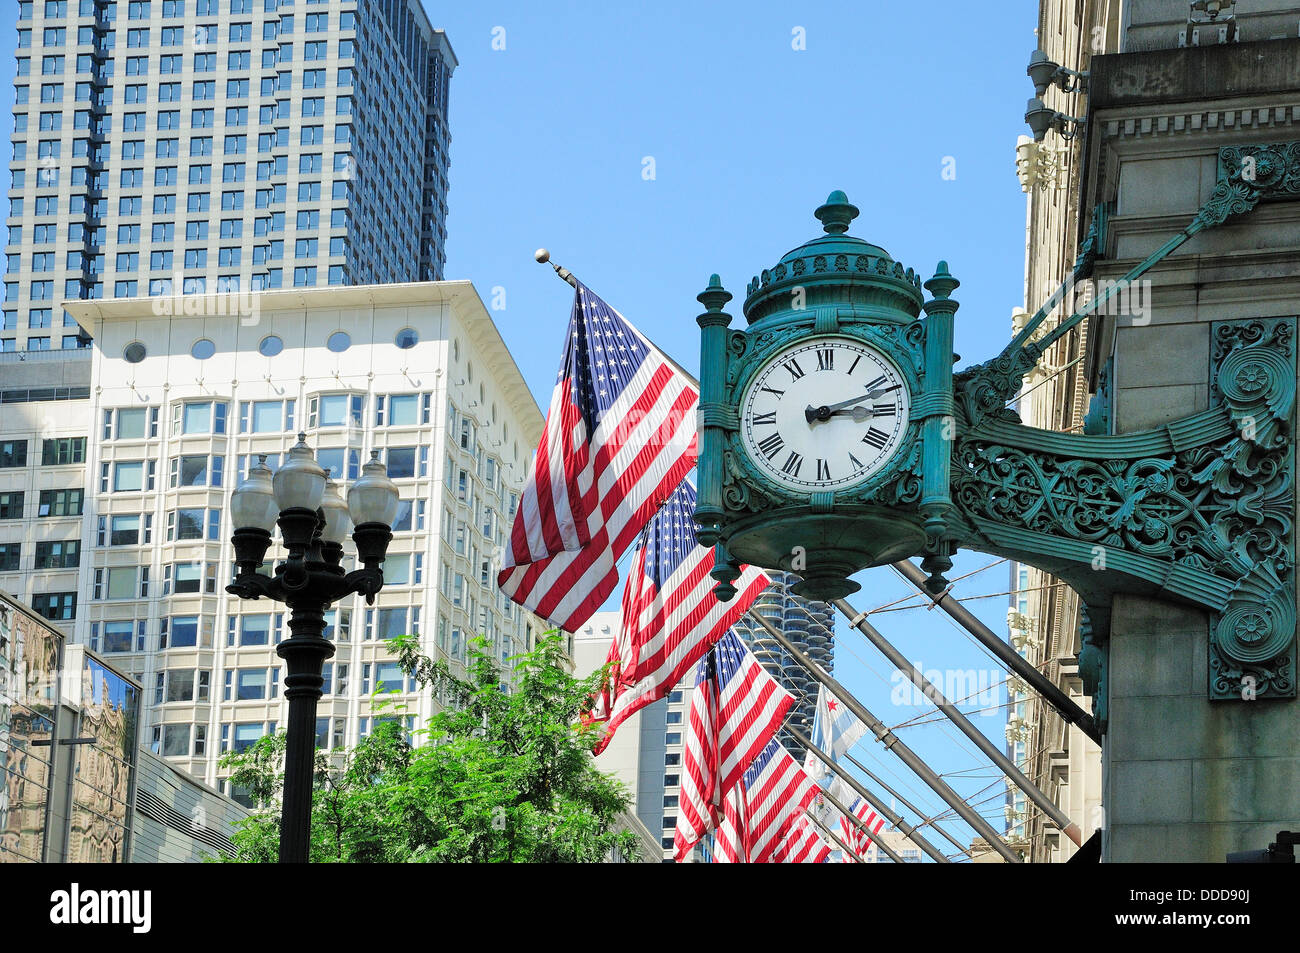 Antique clock on cornerstone of Macy's building in Chicago. - Stock Image